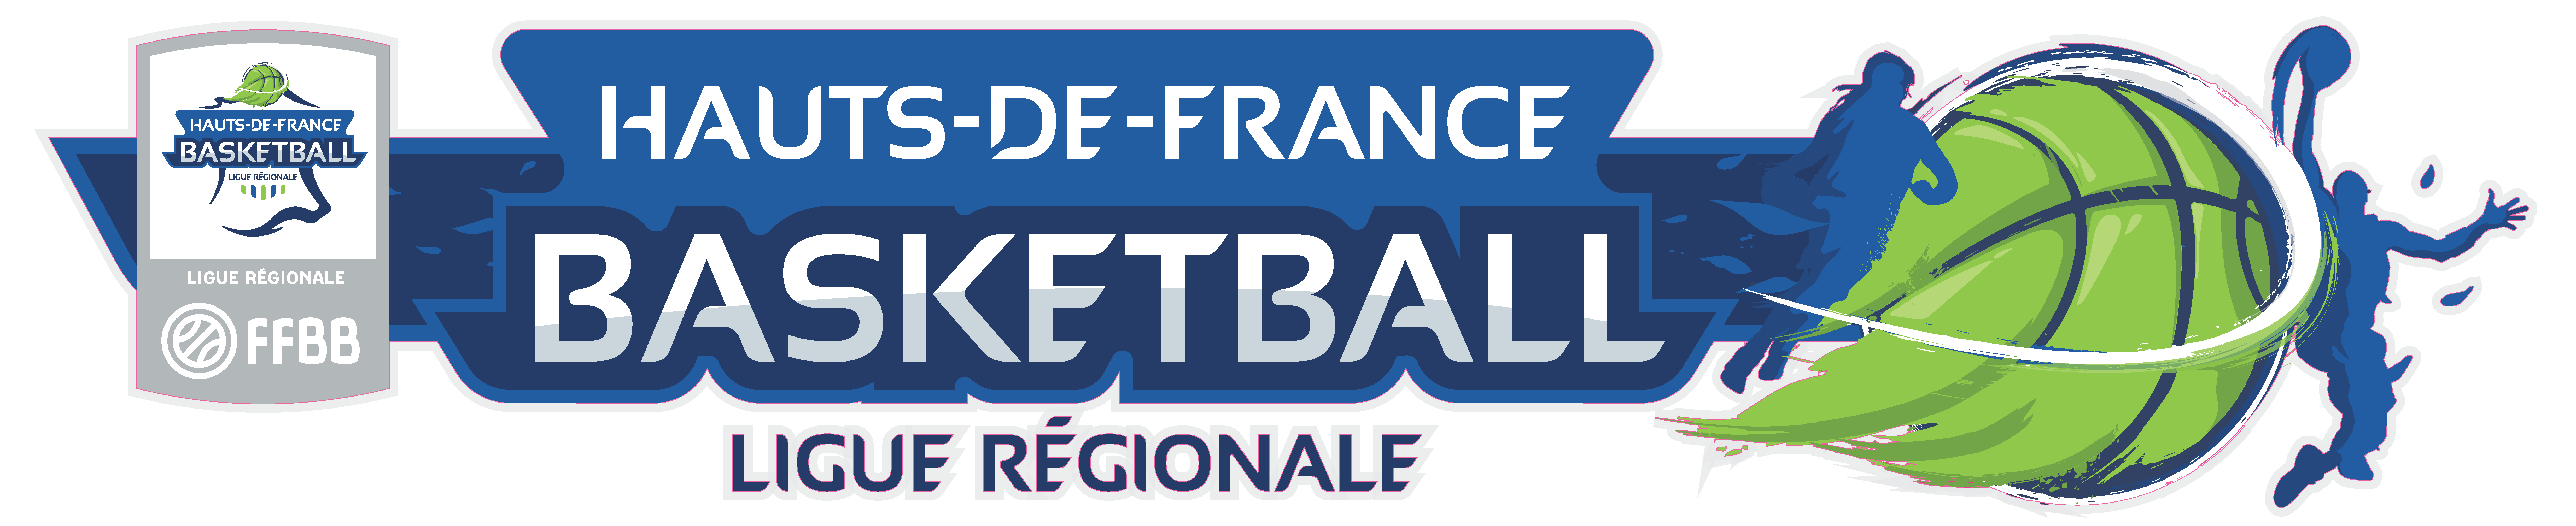 Ligue Hauts-de-France de Basketball